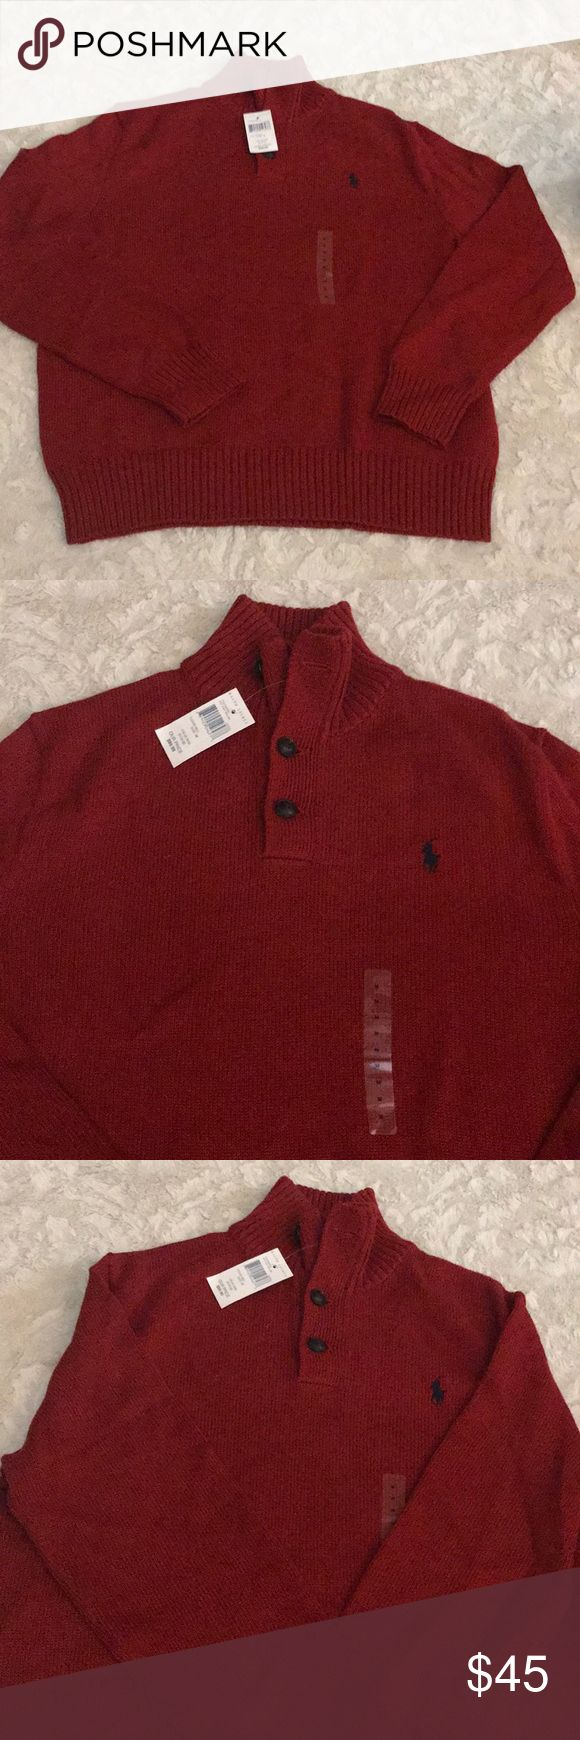 Polo Ralph Lauren Red Sweater Sz M New with tags  Polo Ralph Lauren Red sweater  Size Medium  Original price $90   Please check my other listings i do combine shipping  Location : Winter Box Polo by Ralph Lauren Sweaters